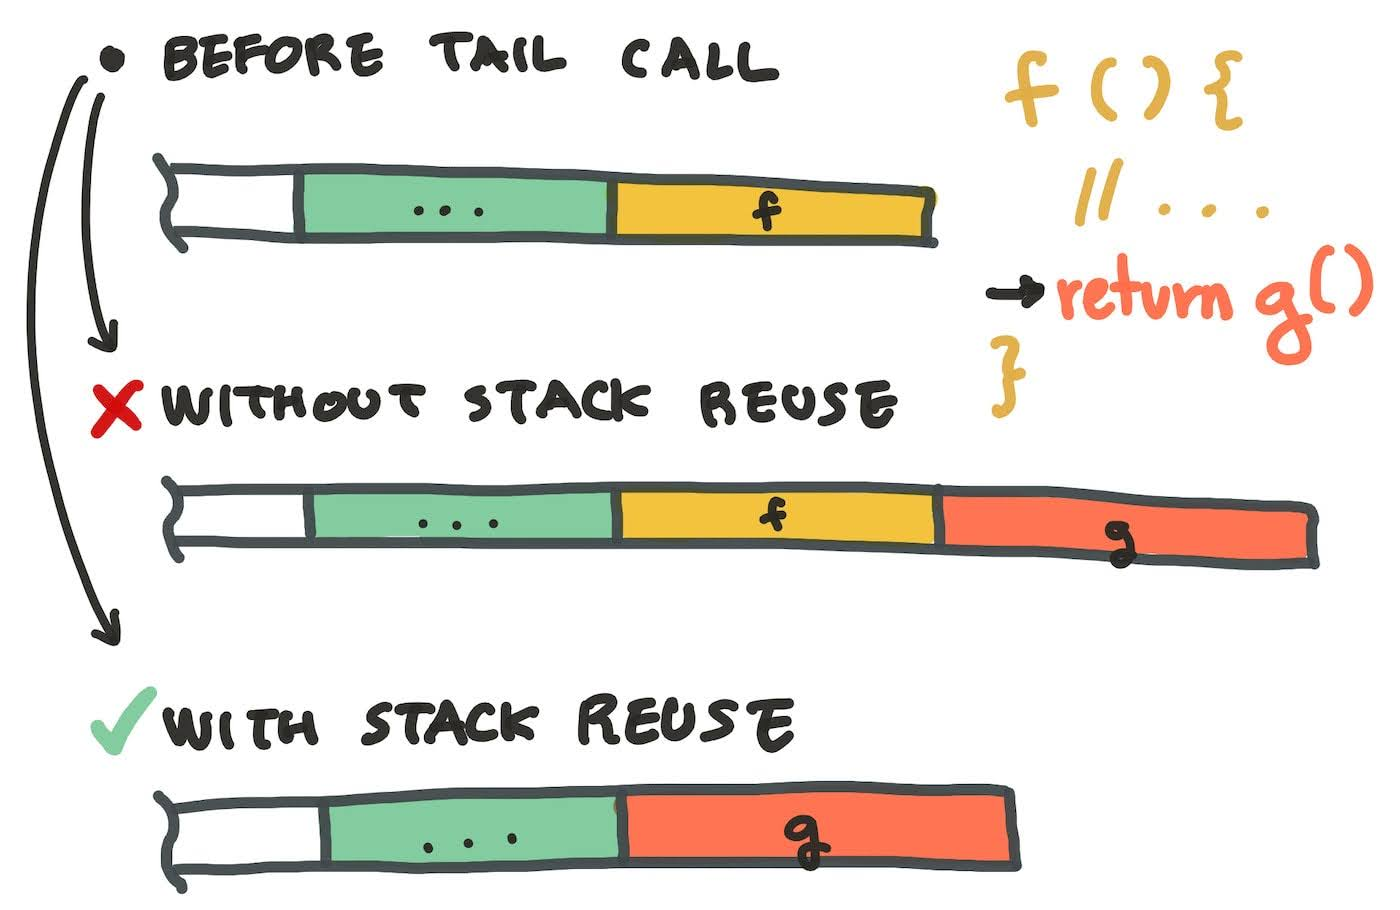 A diagram of a tail call made by reusing the stack frame